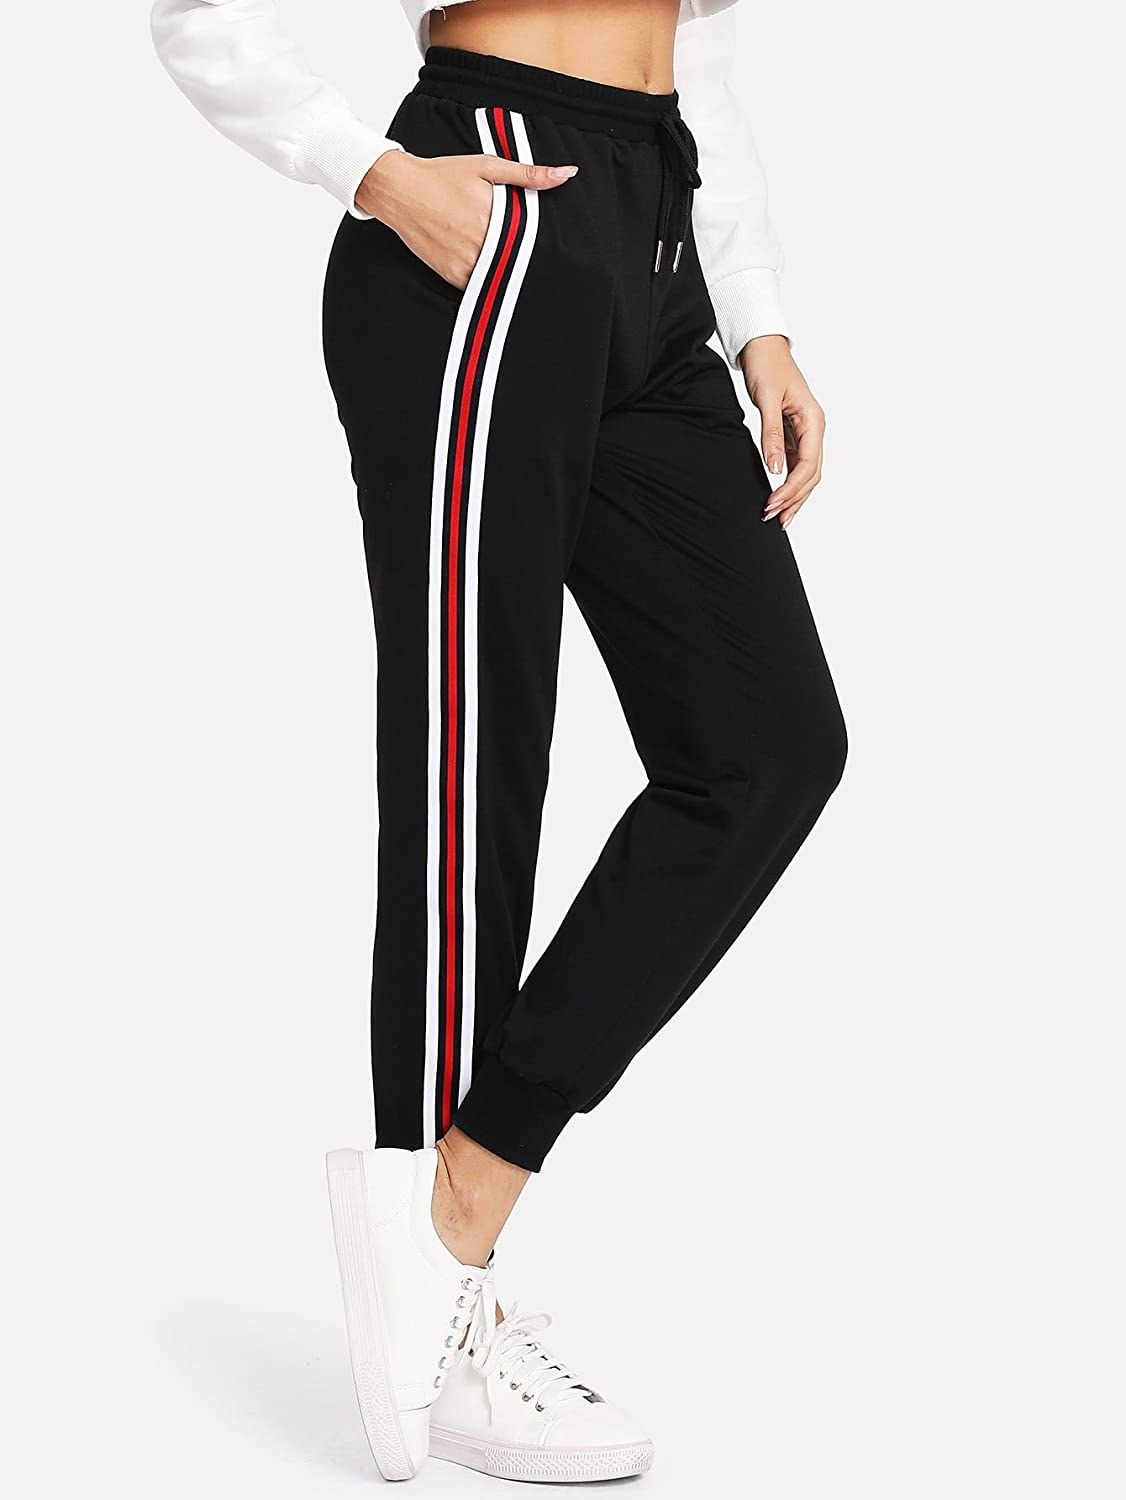 A model in the black joggers with white and red side stripes down the leg